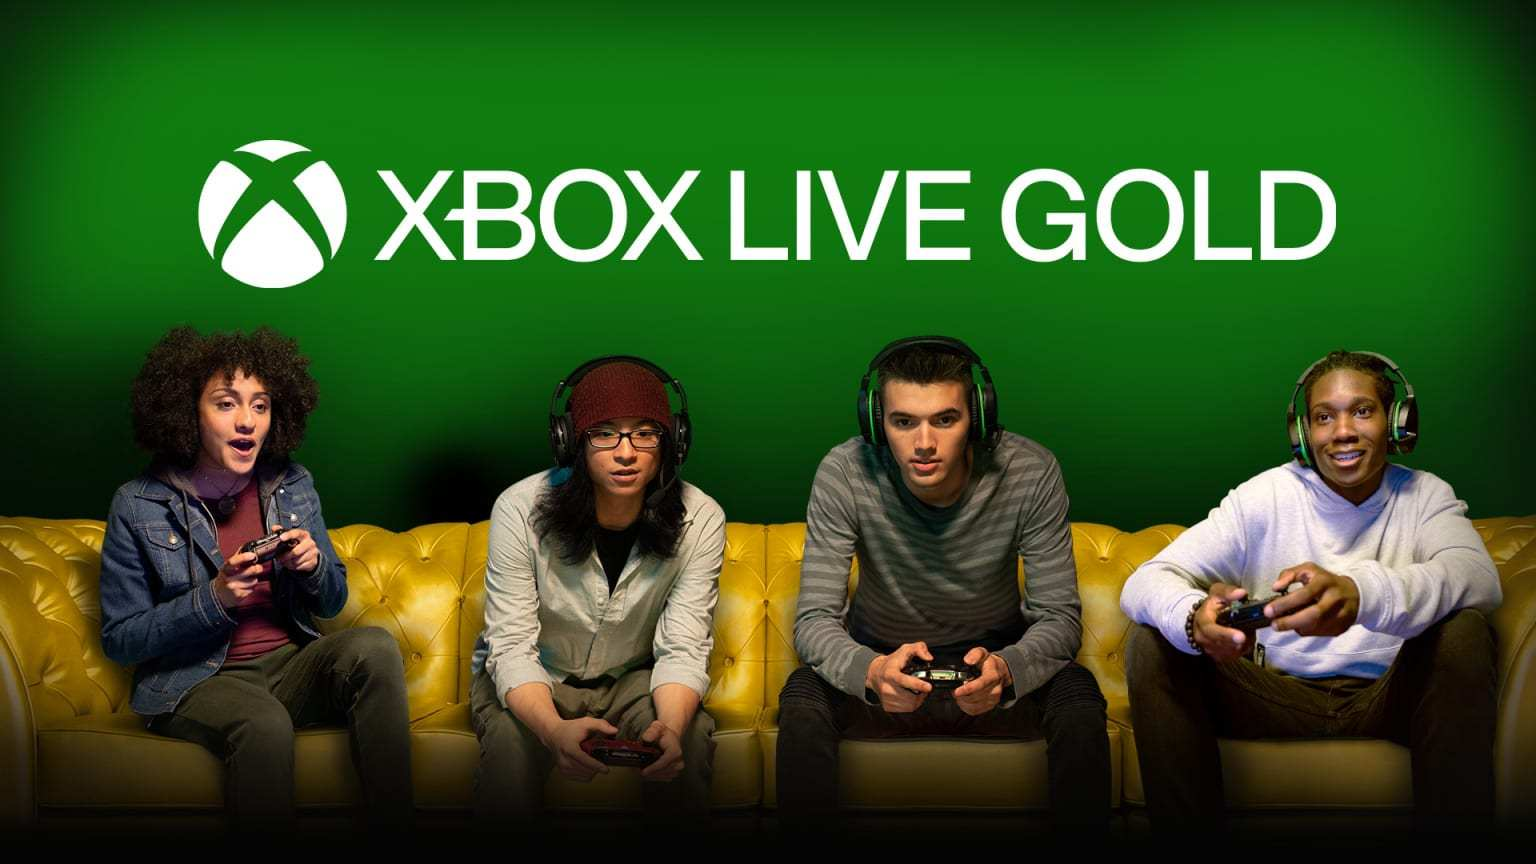 Microsoft Reverses Xbox Live Gold Price Increase; Free to Play Games Will No Longer Require Gold